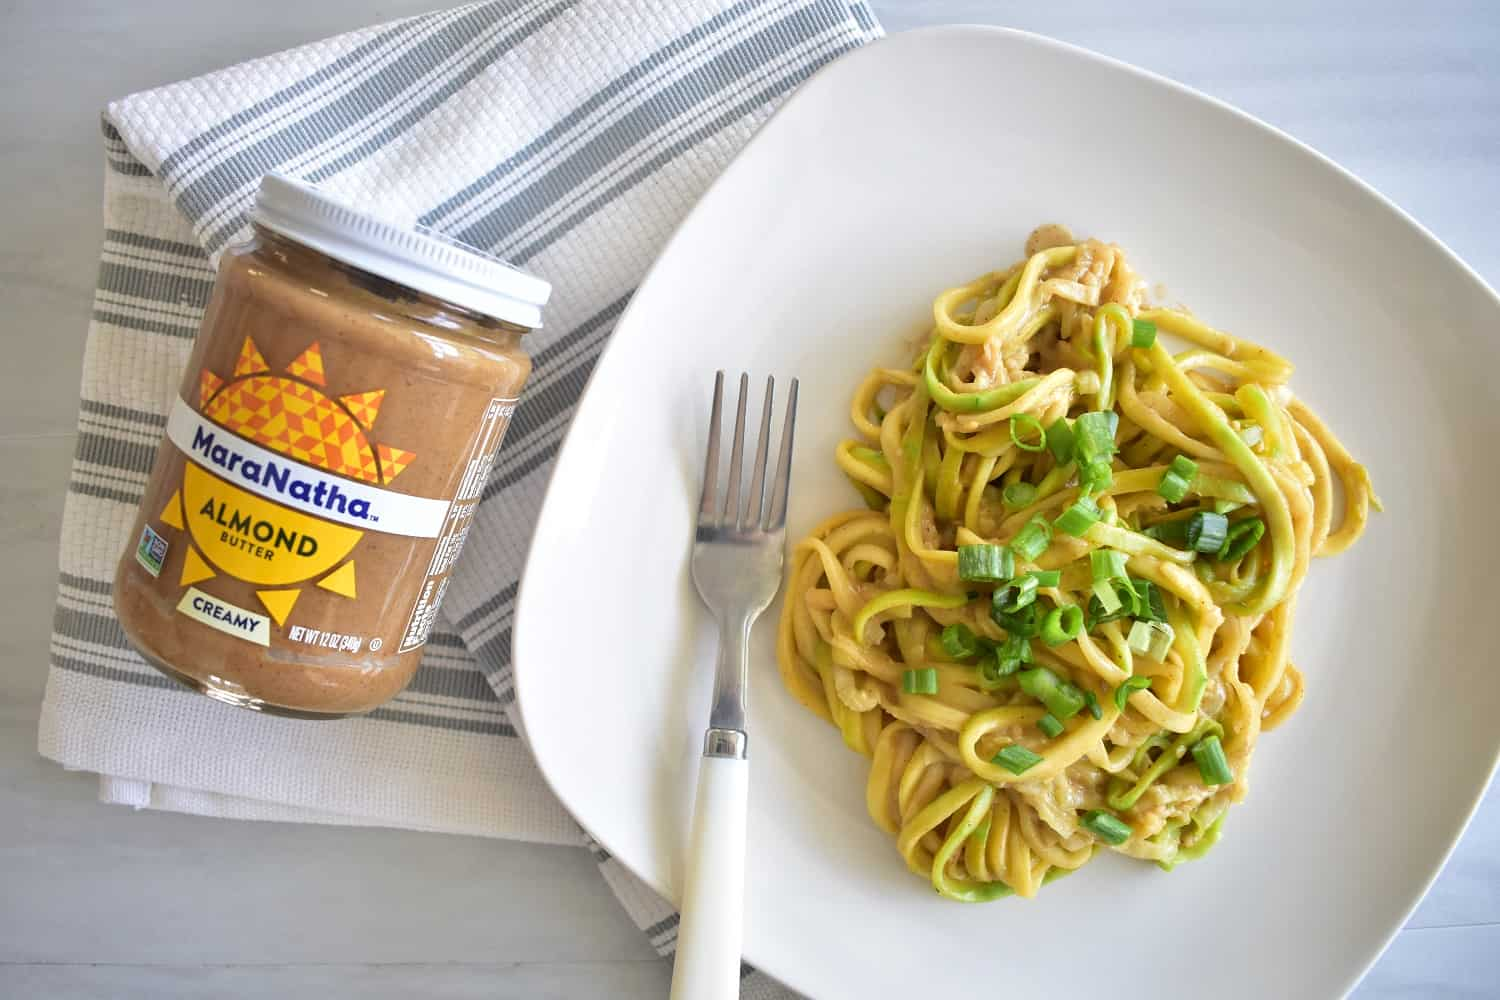 zucchini noodles with almond butter sauce on a plate next to a jar of almond butter